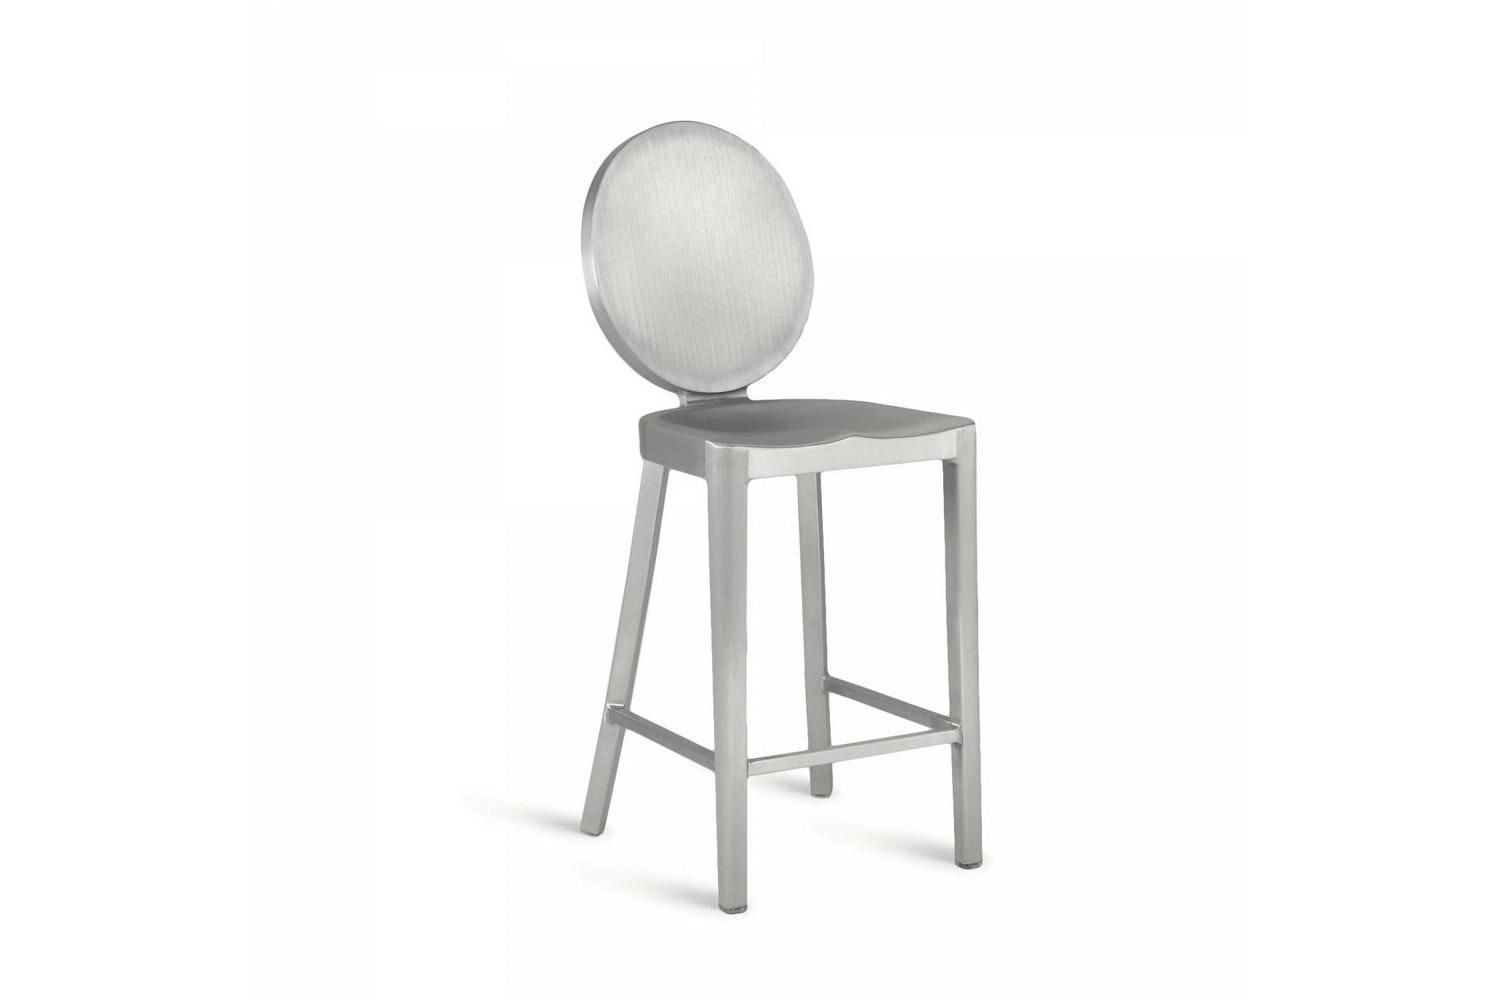 Kong Stool by Philippe Starck for Emeco